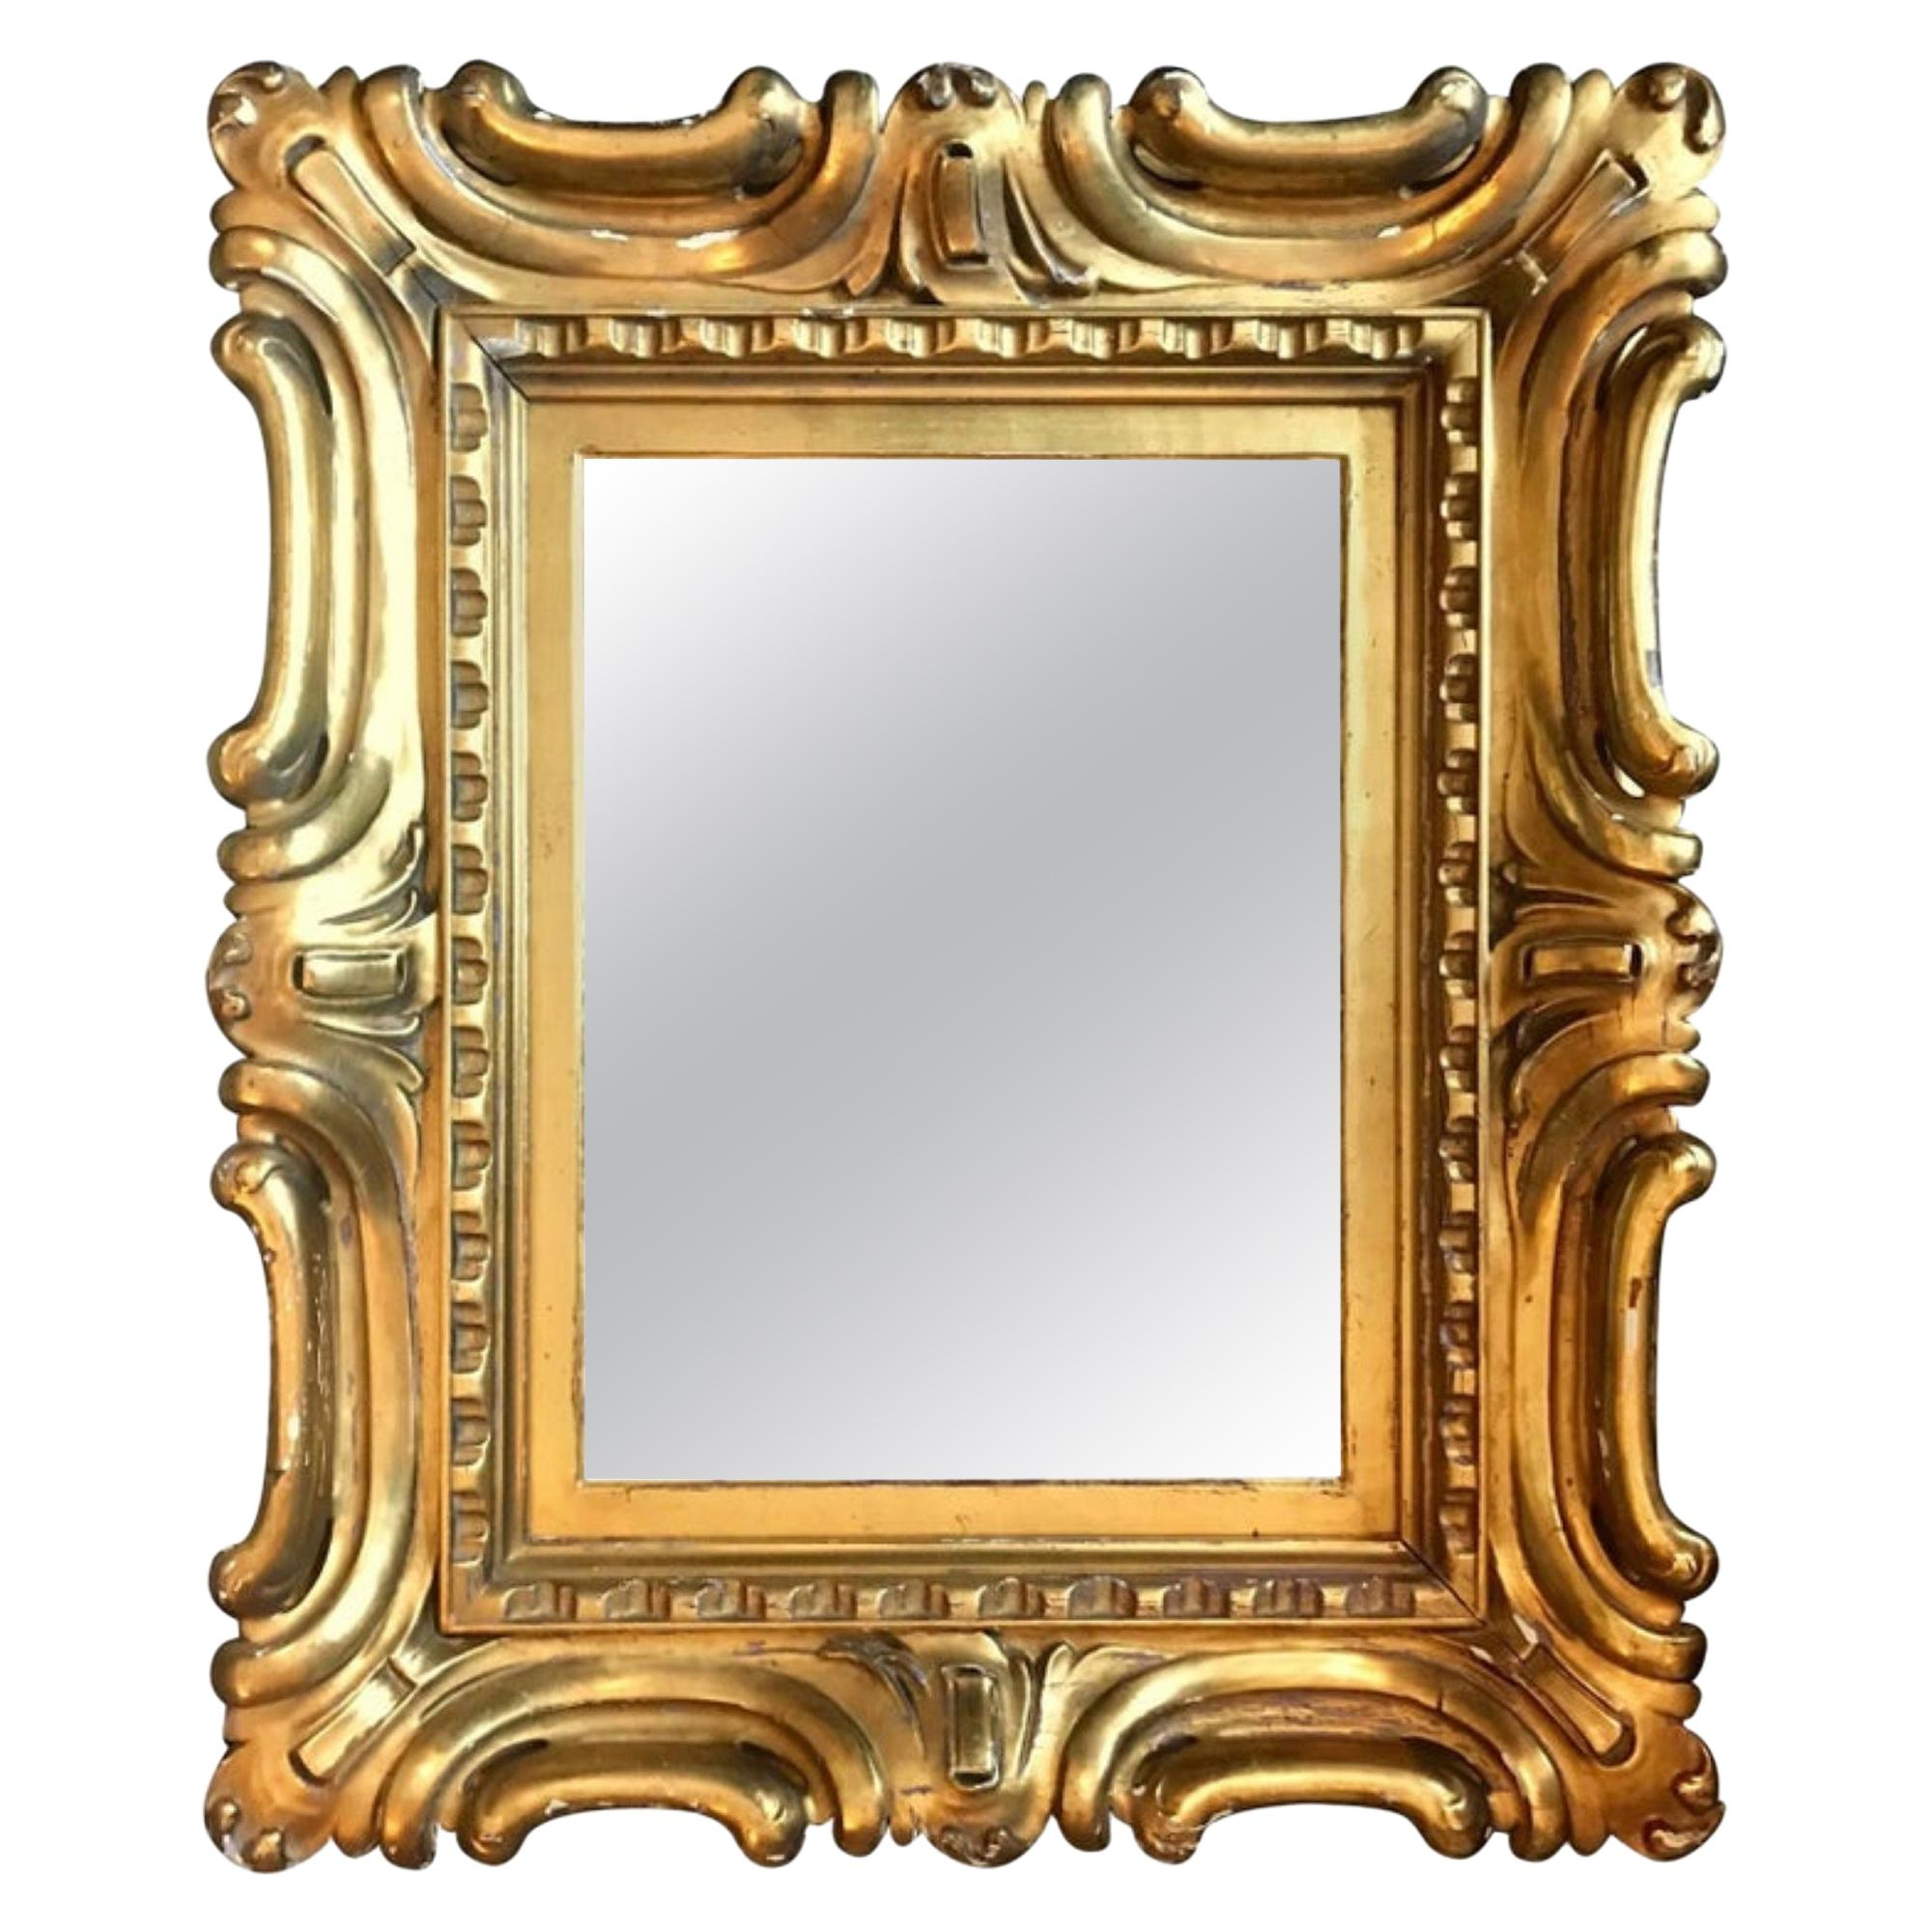 Venetian Sansovino Palatial Early Baroque Style Carved and Gilded Mirror